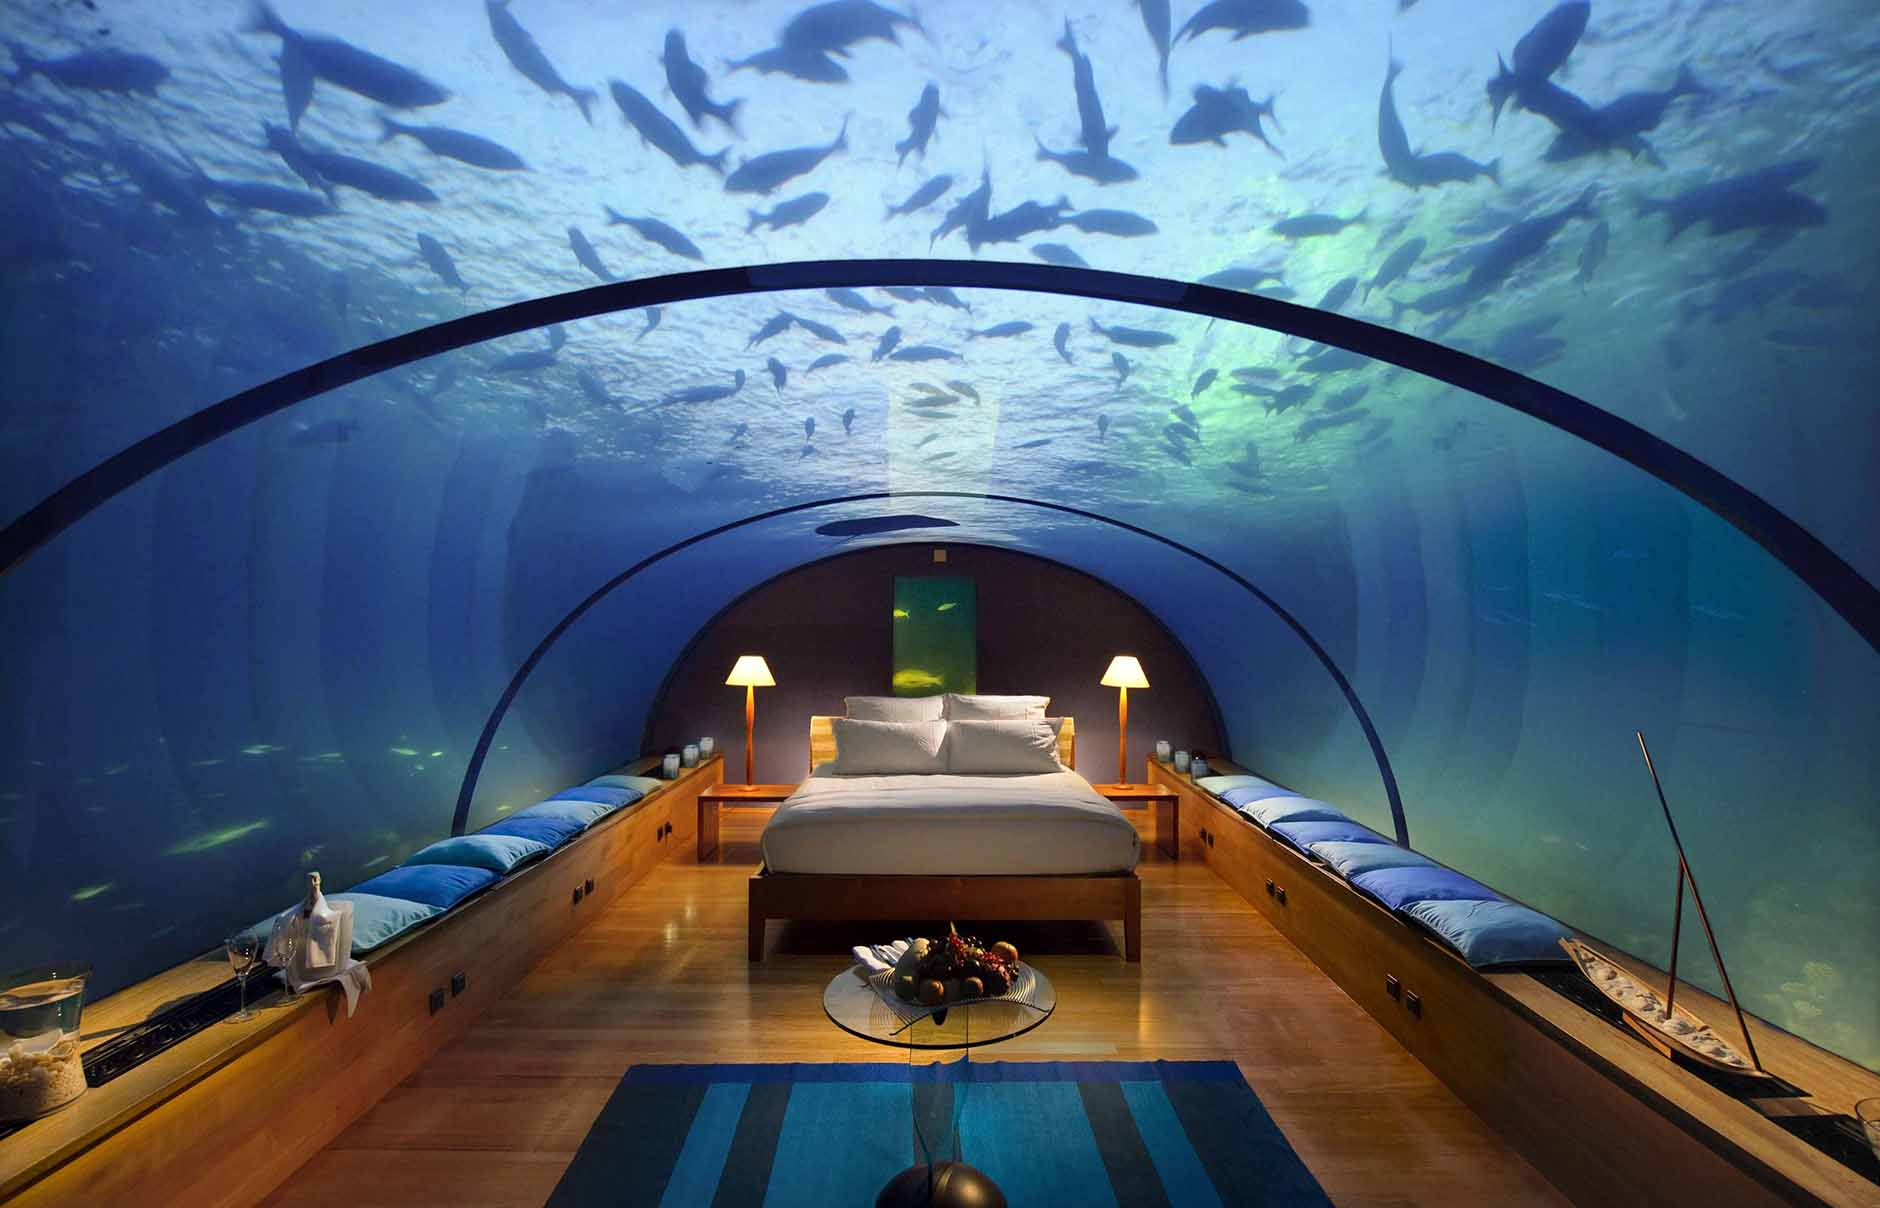 Conrad Maldives Rangali Island, Maldives. Luxury Hotel Review by TravelPlusStyle. Photo © Hilton